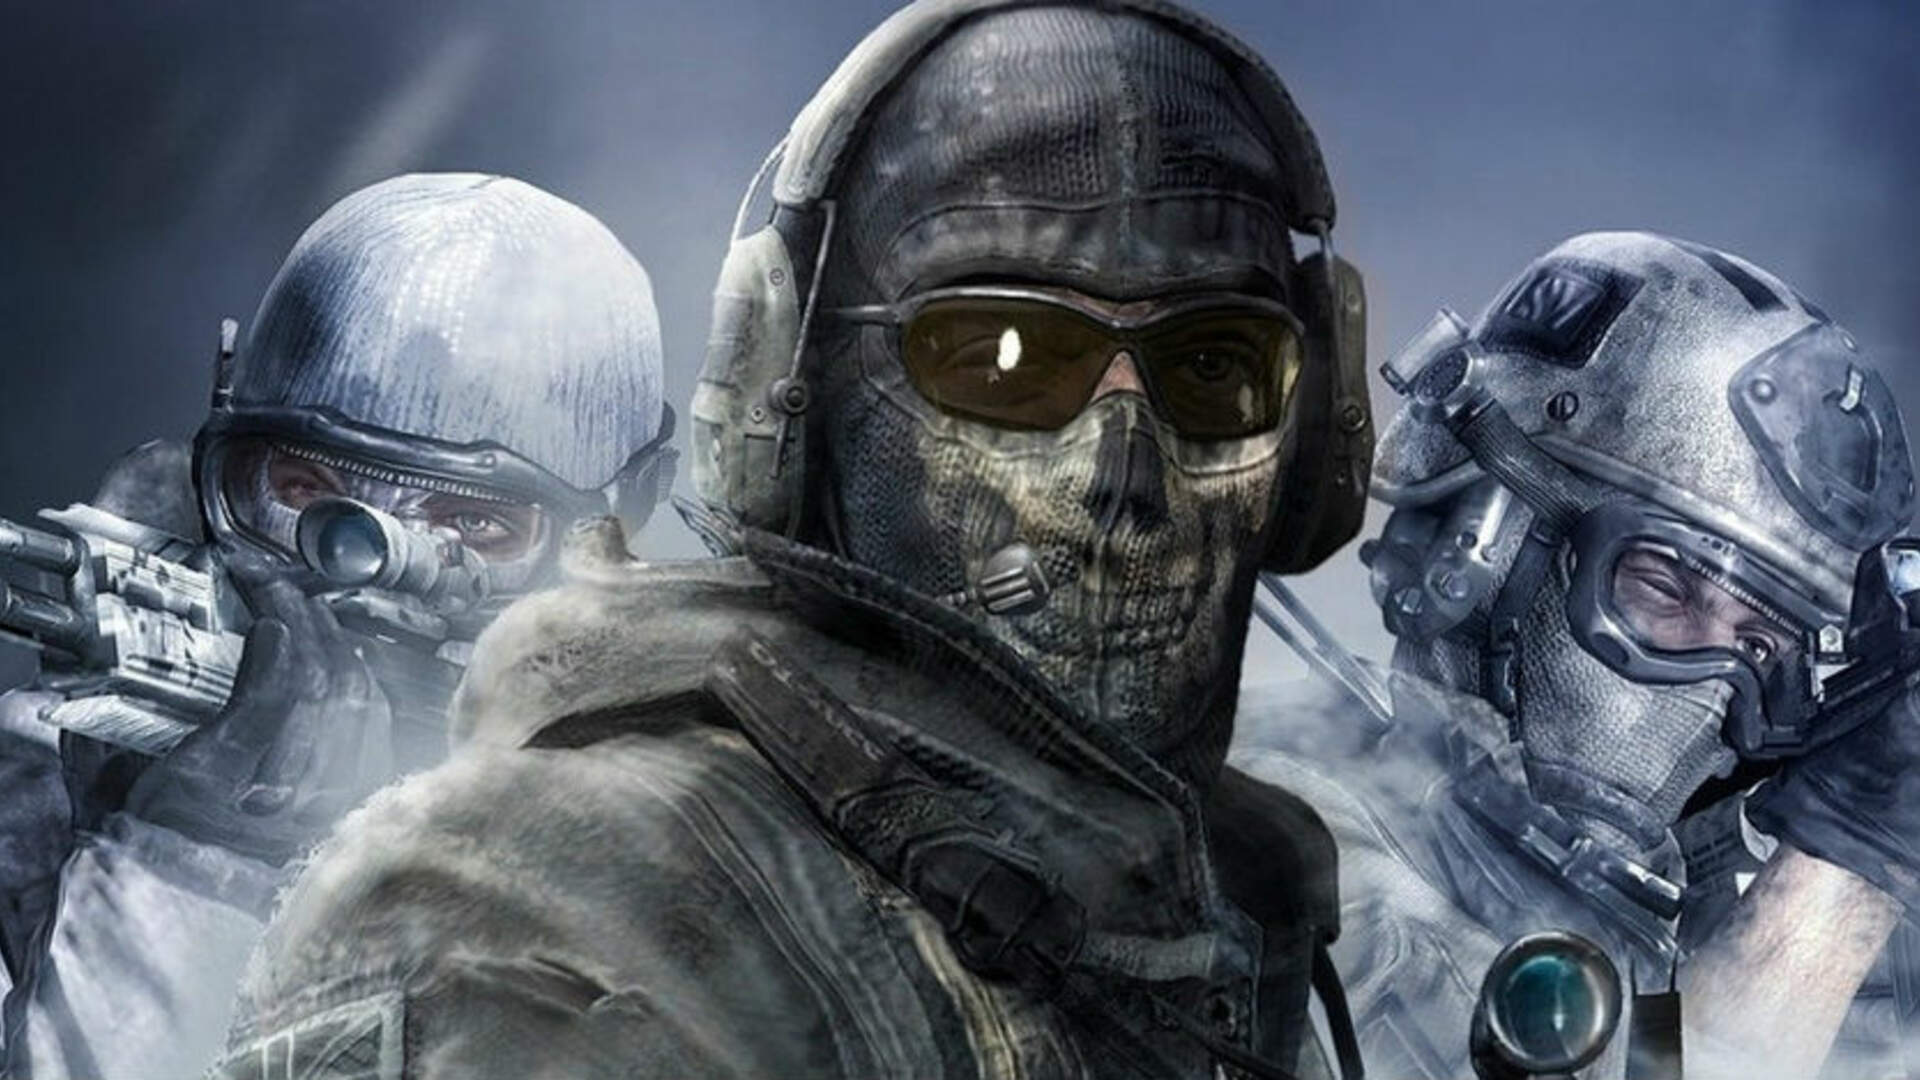 Infinity Ward and Neversoft Merge to Form... Infinity Ward